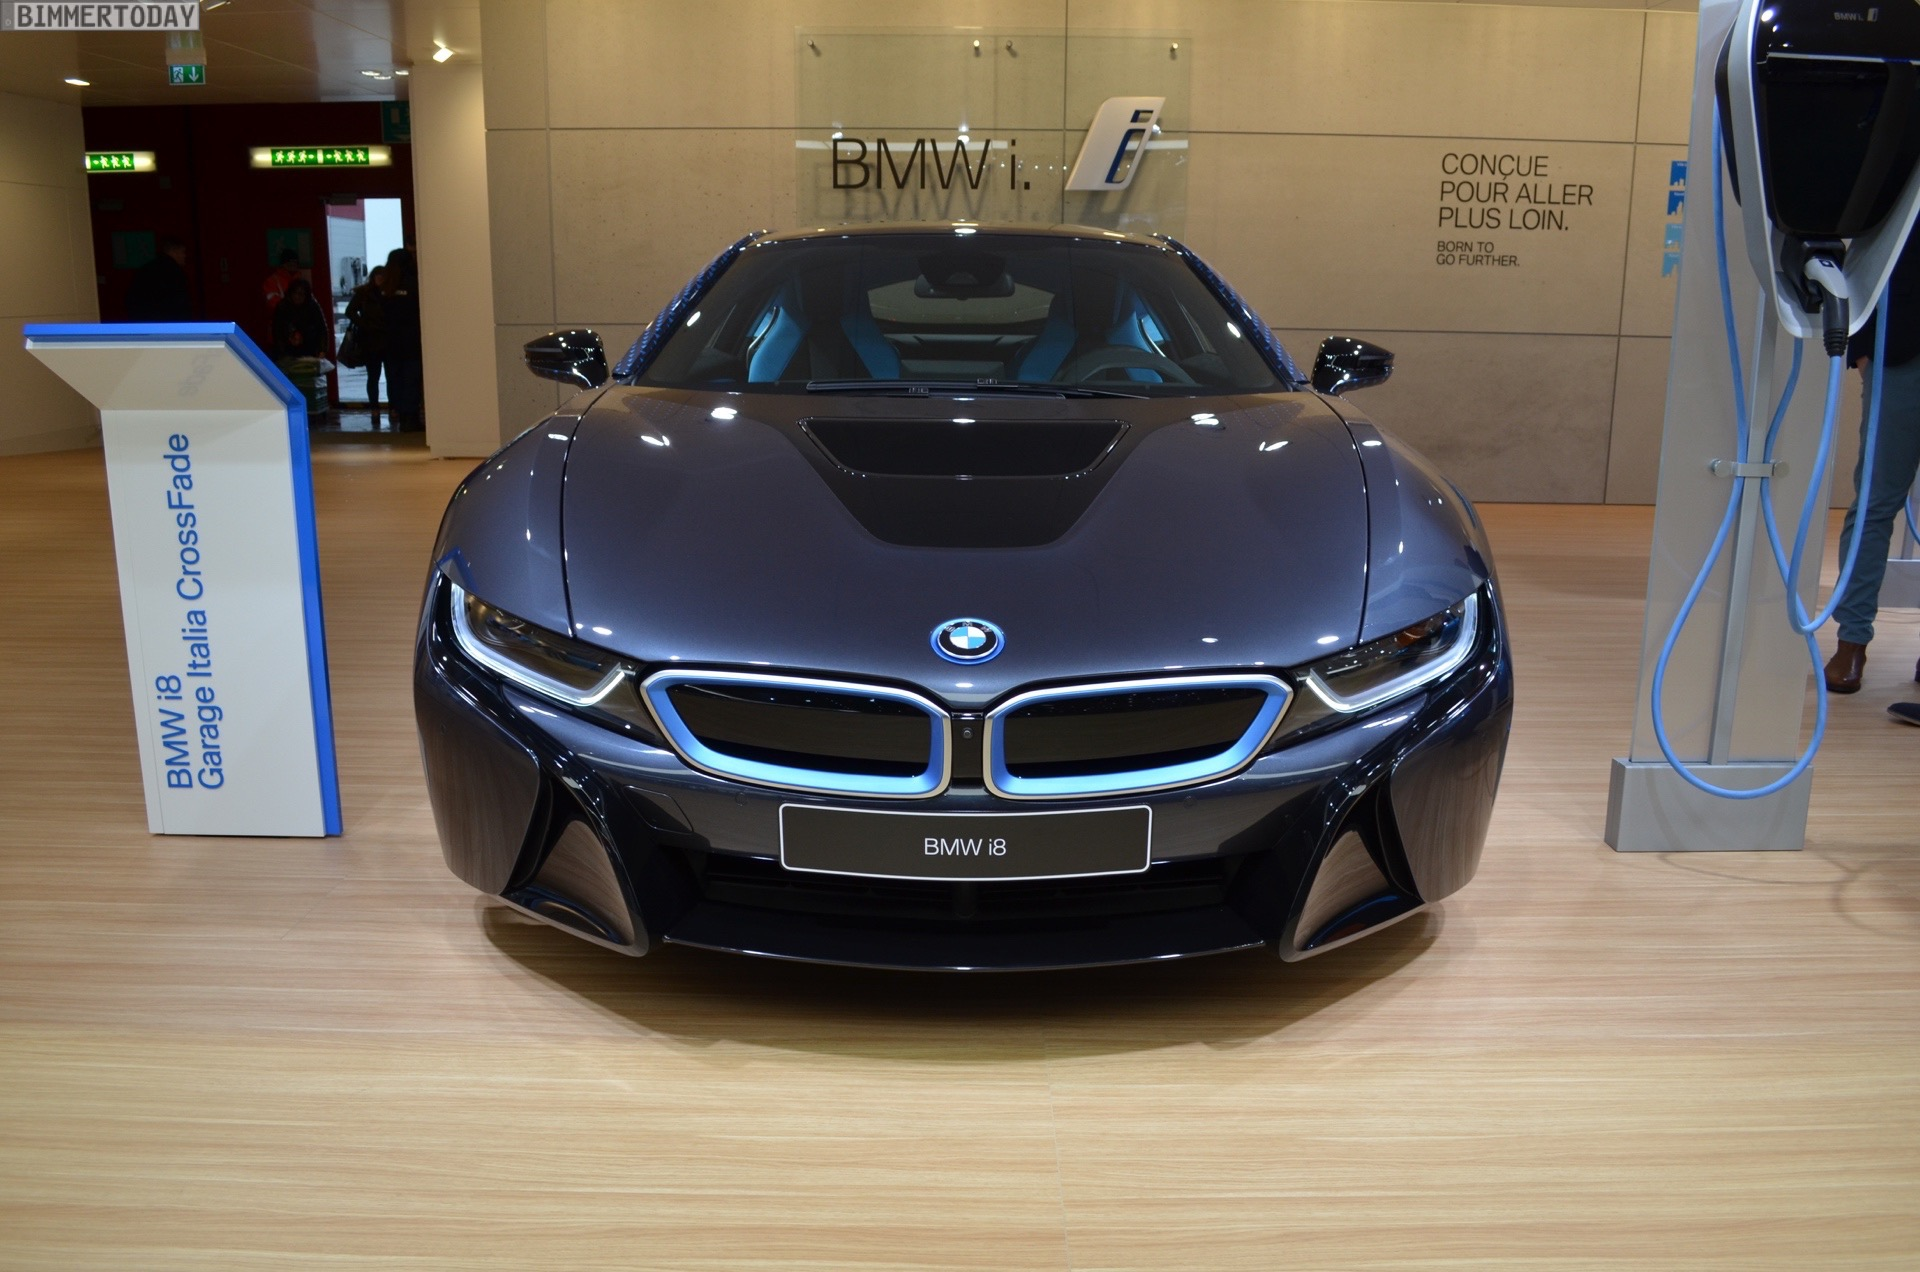 2017 Geneva: BMW i8 CrossFade Edition in the Garage Italia ...